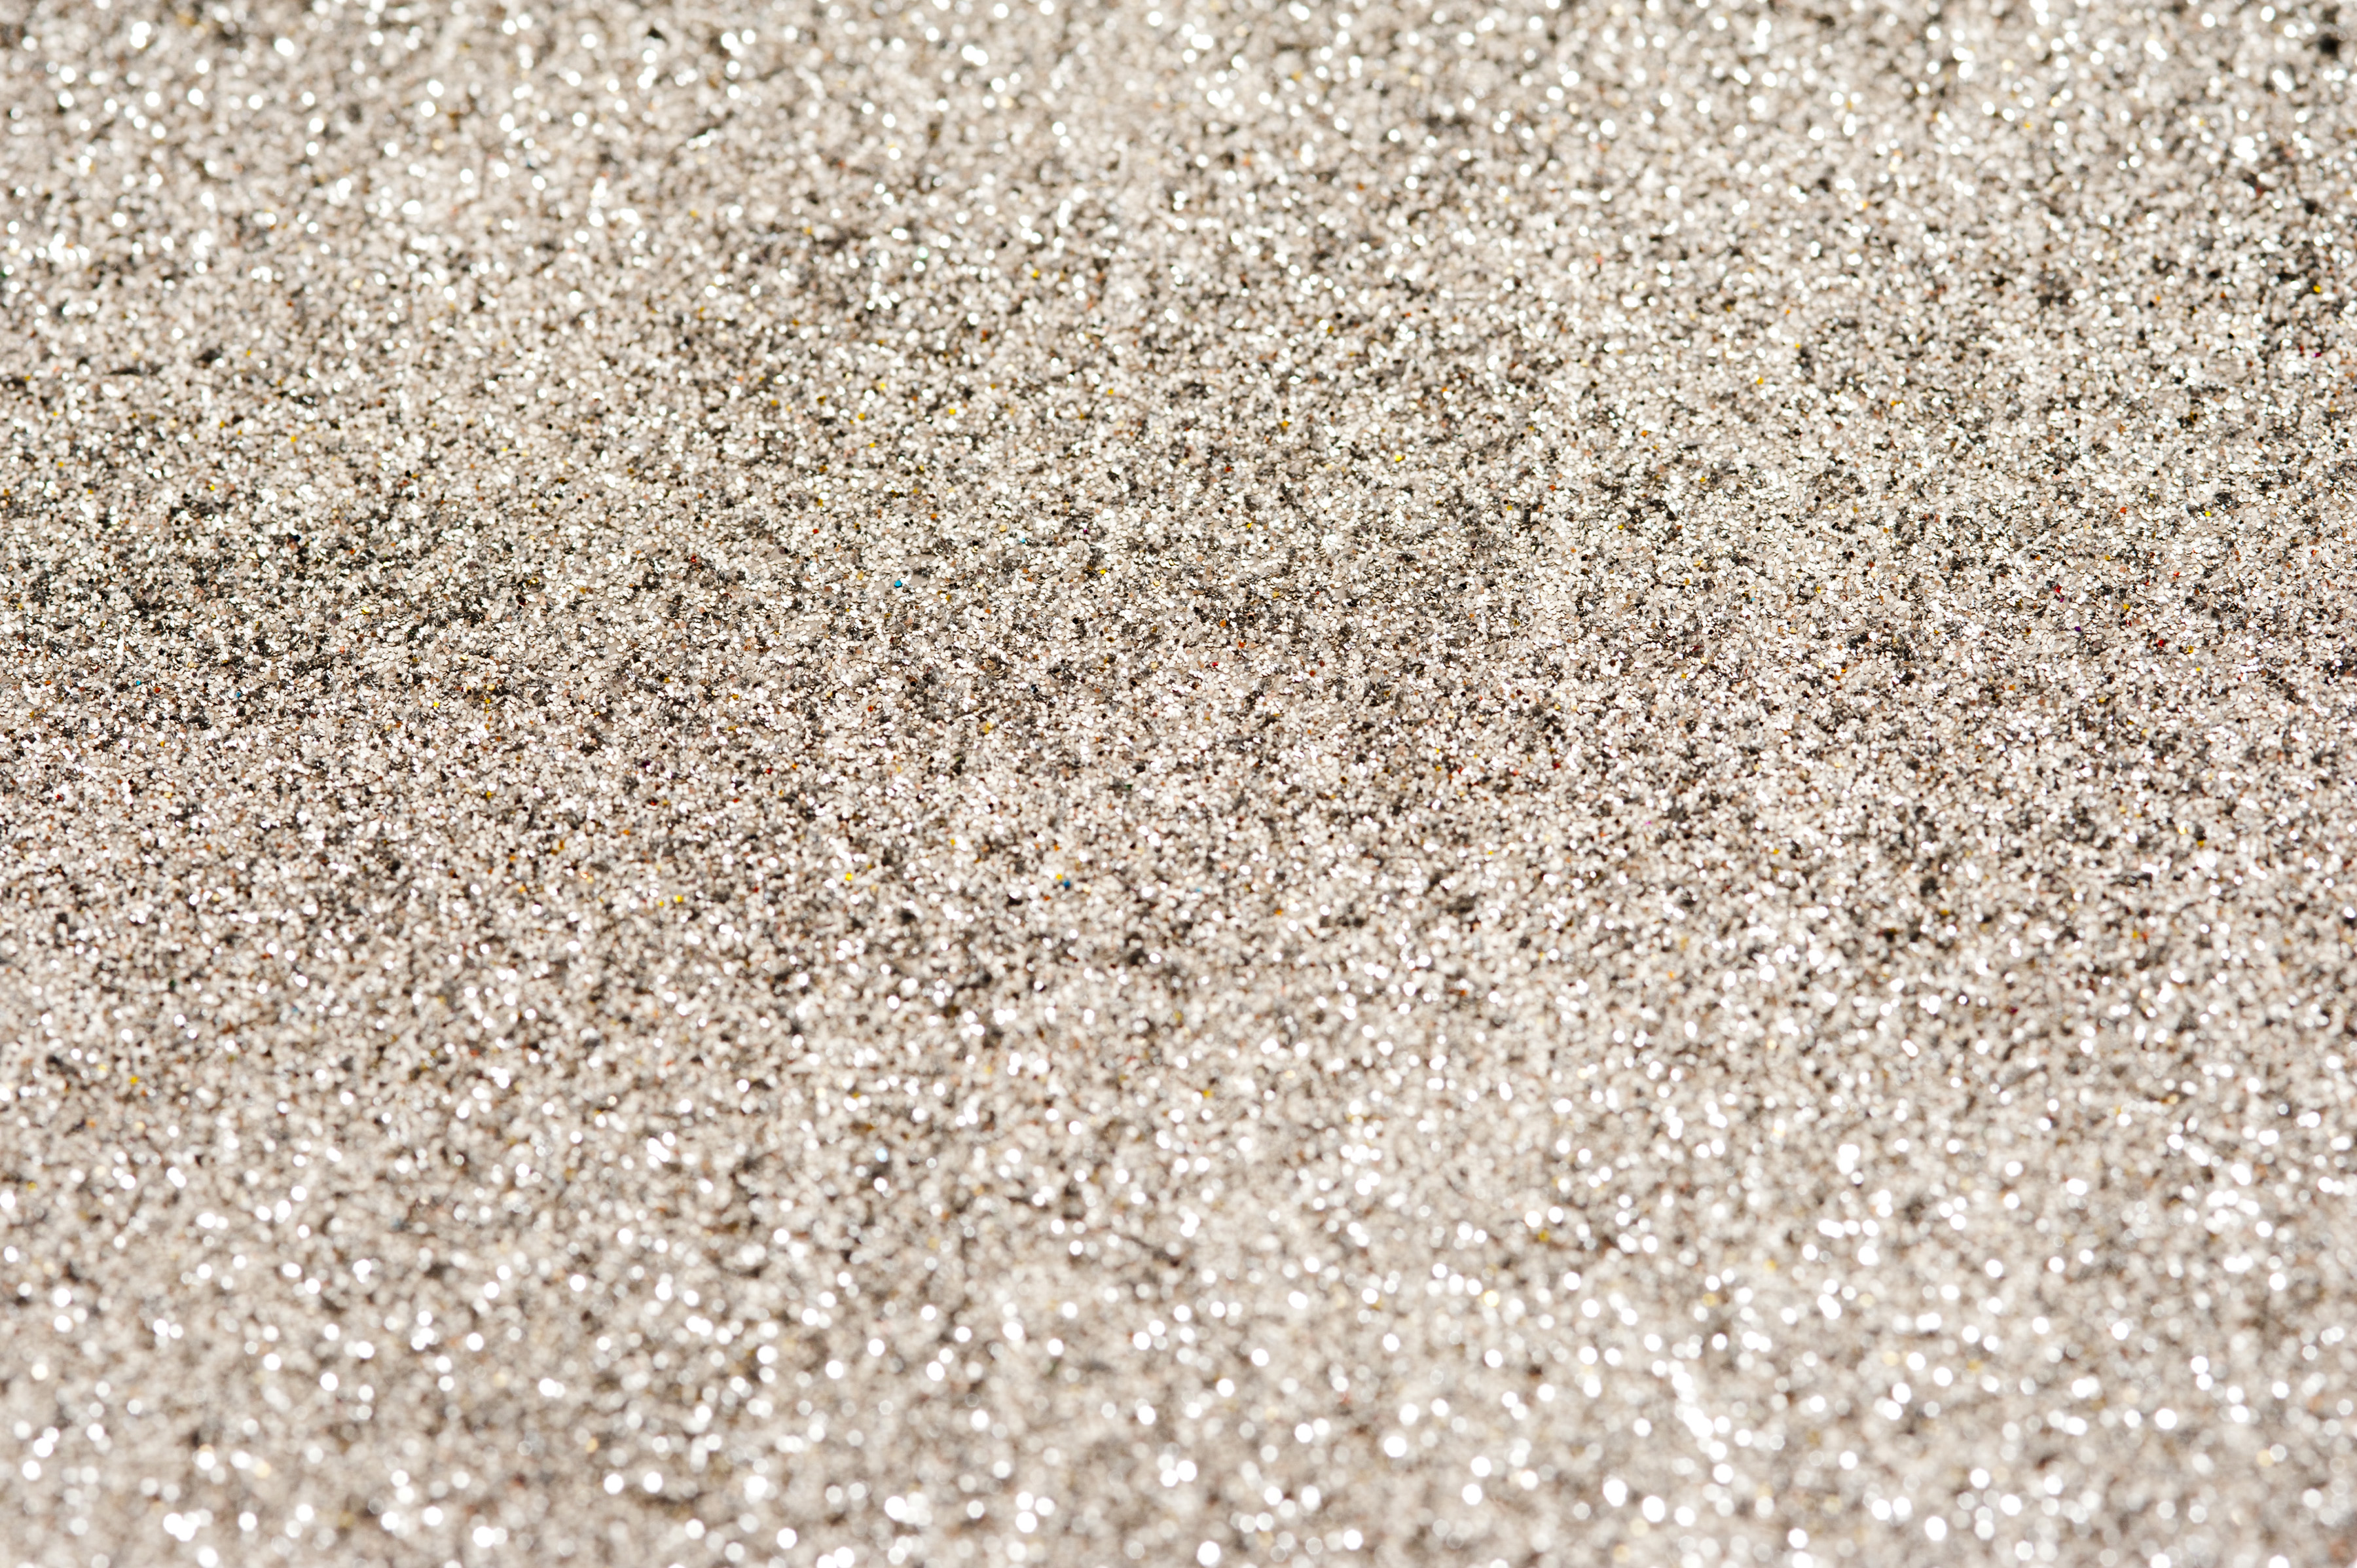 Full frame silver glitter festive background texture for a Christmas themed concept